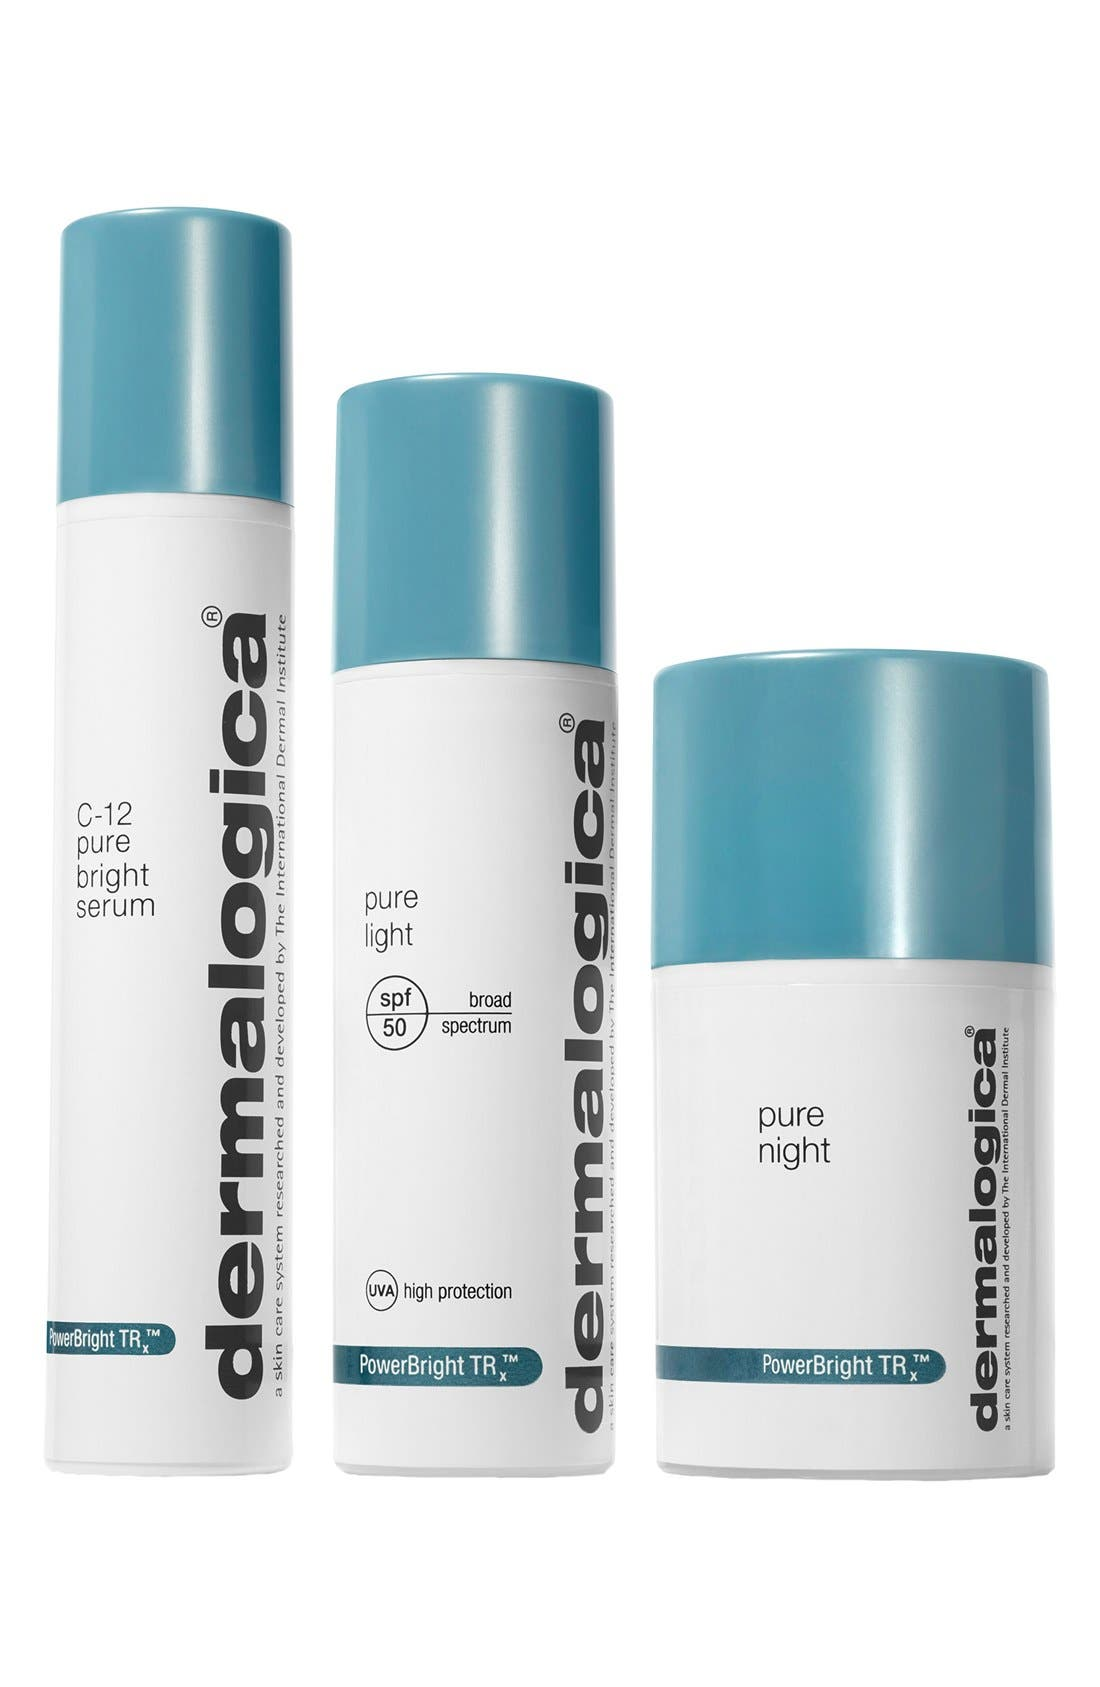 dermalogica® 'PowerBright TRx™' Travel Kit ($59 Value)